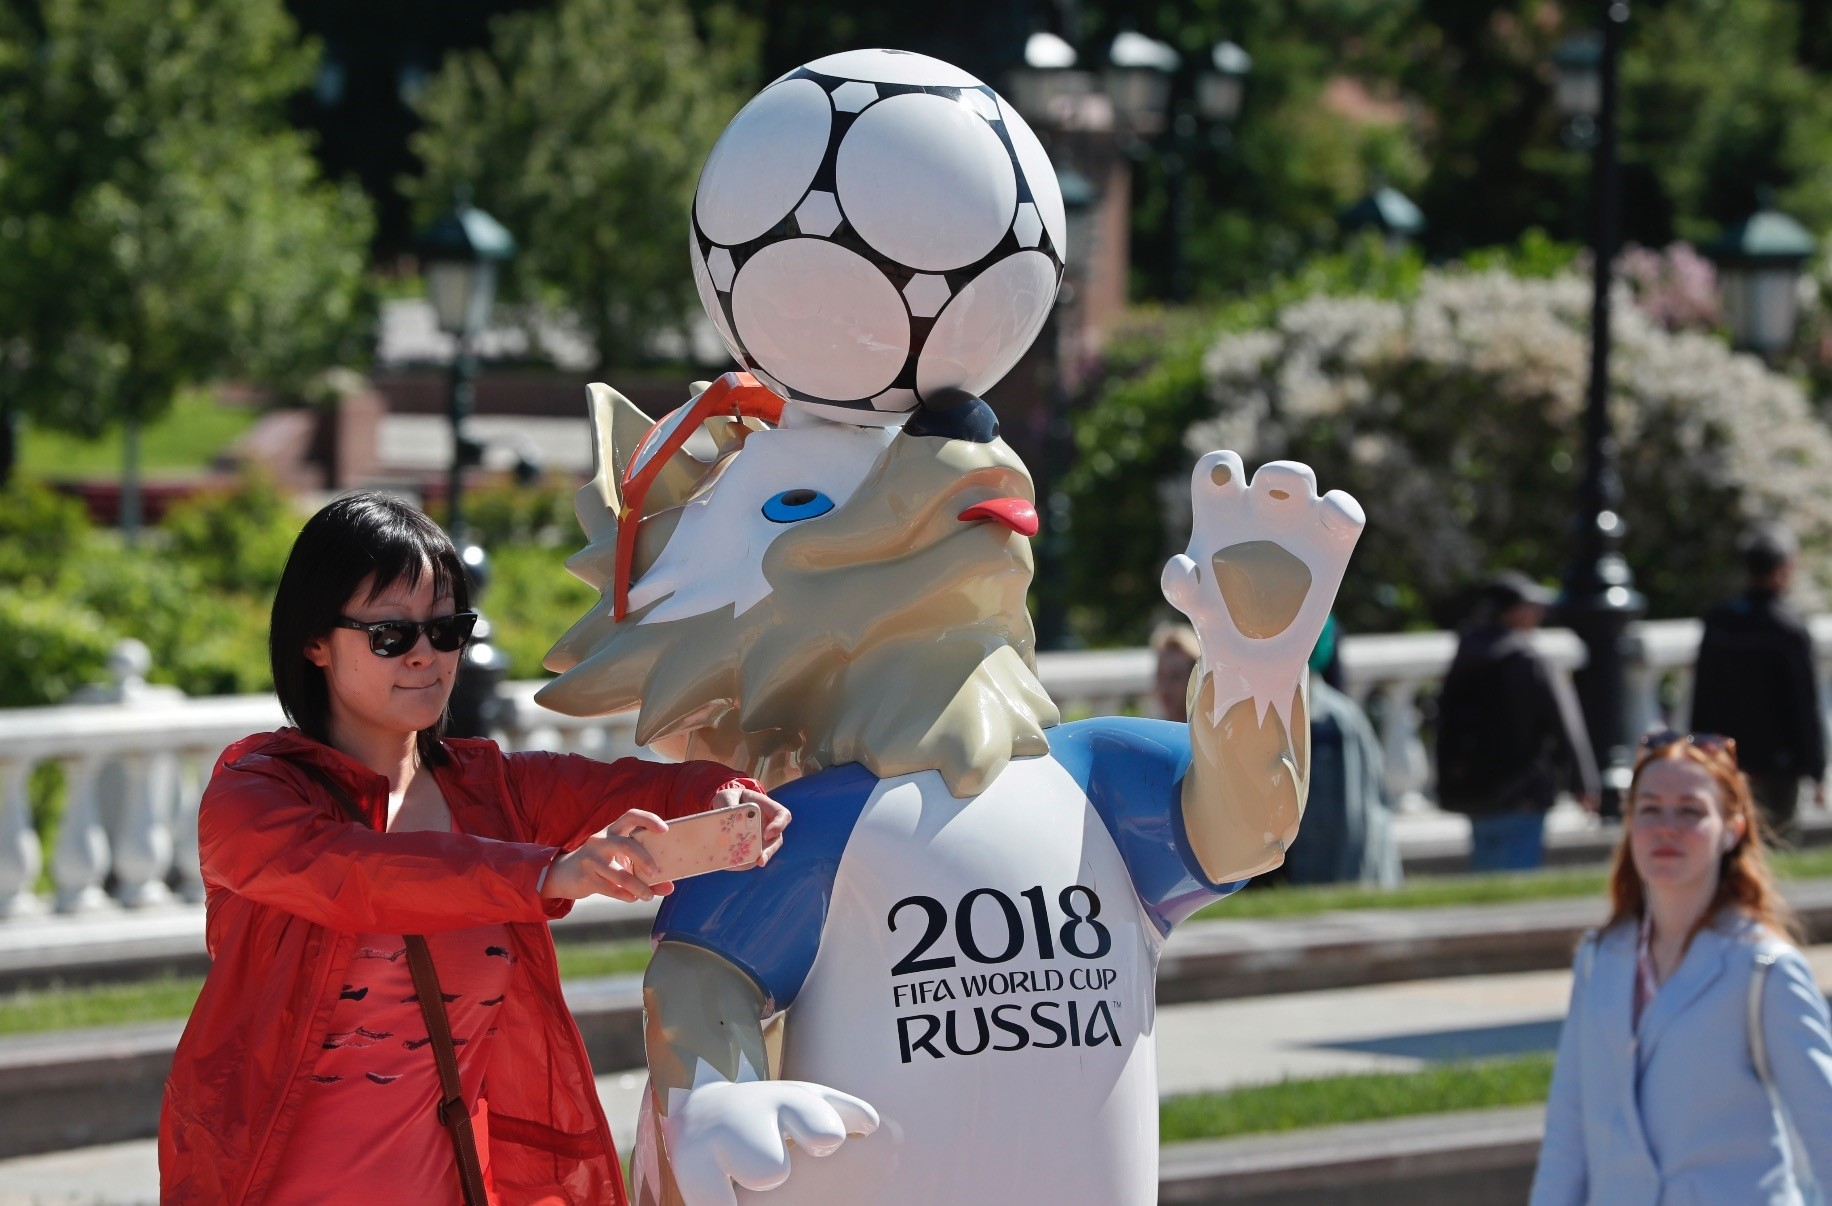 A woman takes a selfie with a sculpture of Zabivaka, the official mascot for the 2018 FIFA World Cup Russia, Moscow, Russia, May 21.